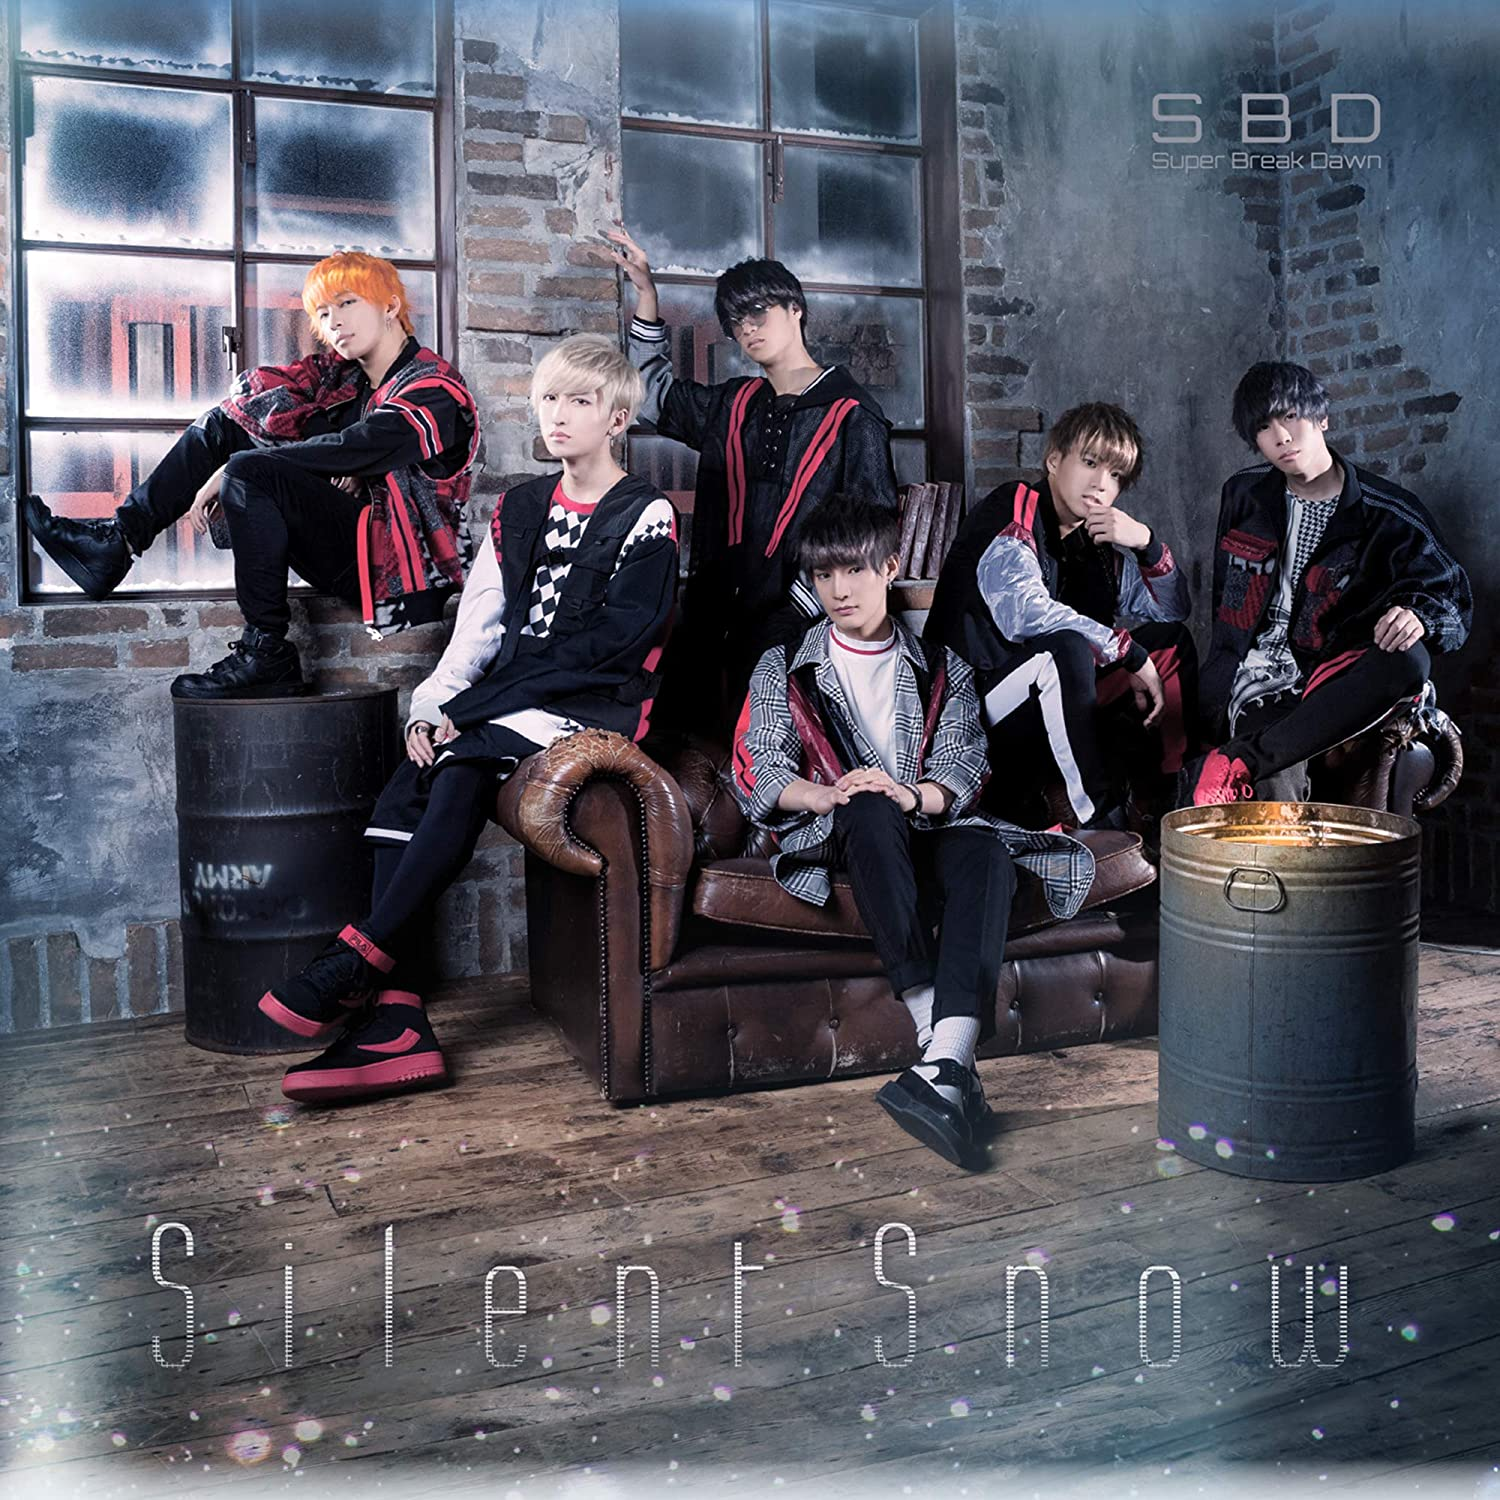 Super Break Dawn「Silent Snow(Single)」